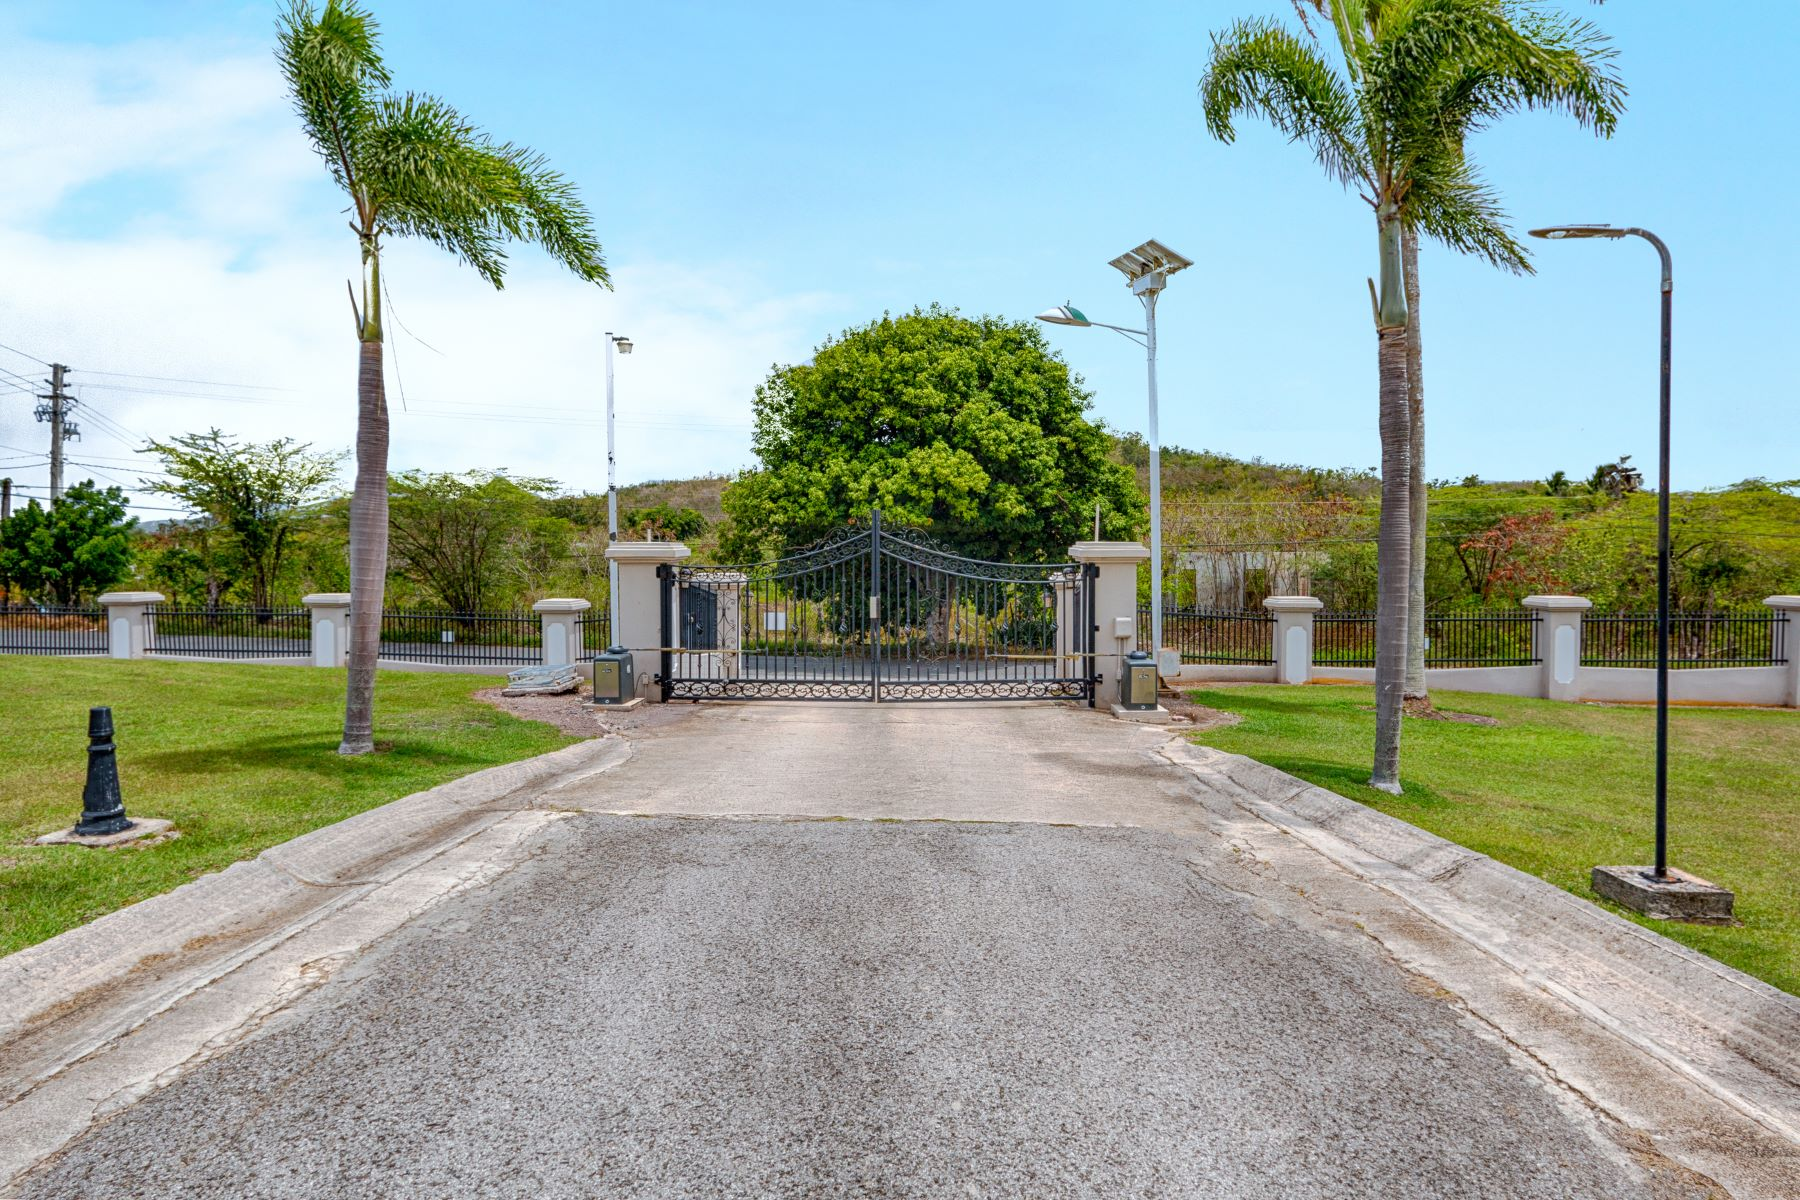 Additional photo for property listing at Sustainable Tuscan Masterpiece Country Estate 117 St Km 11.7 Sabana Grande, 00637 Puerto Rico